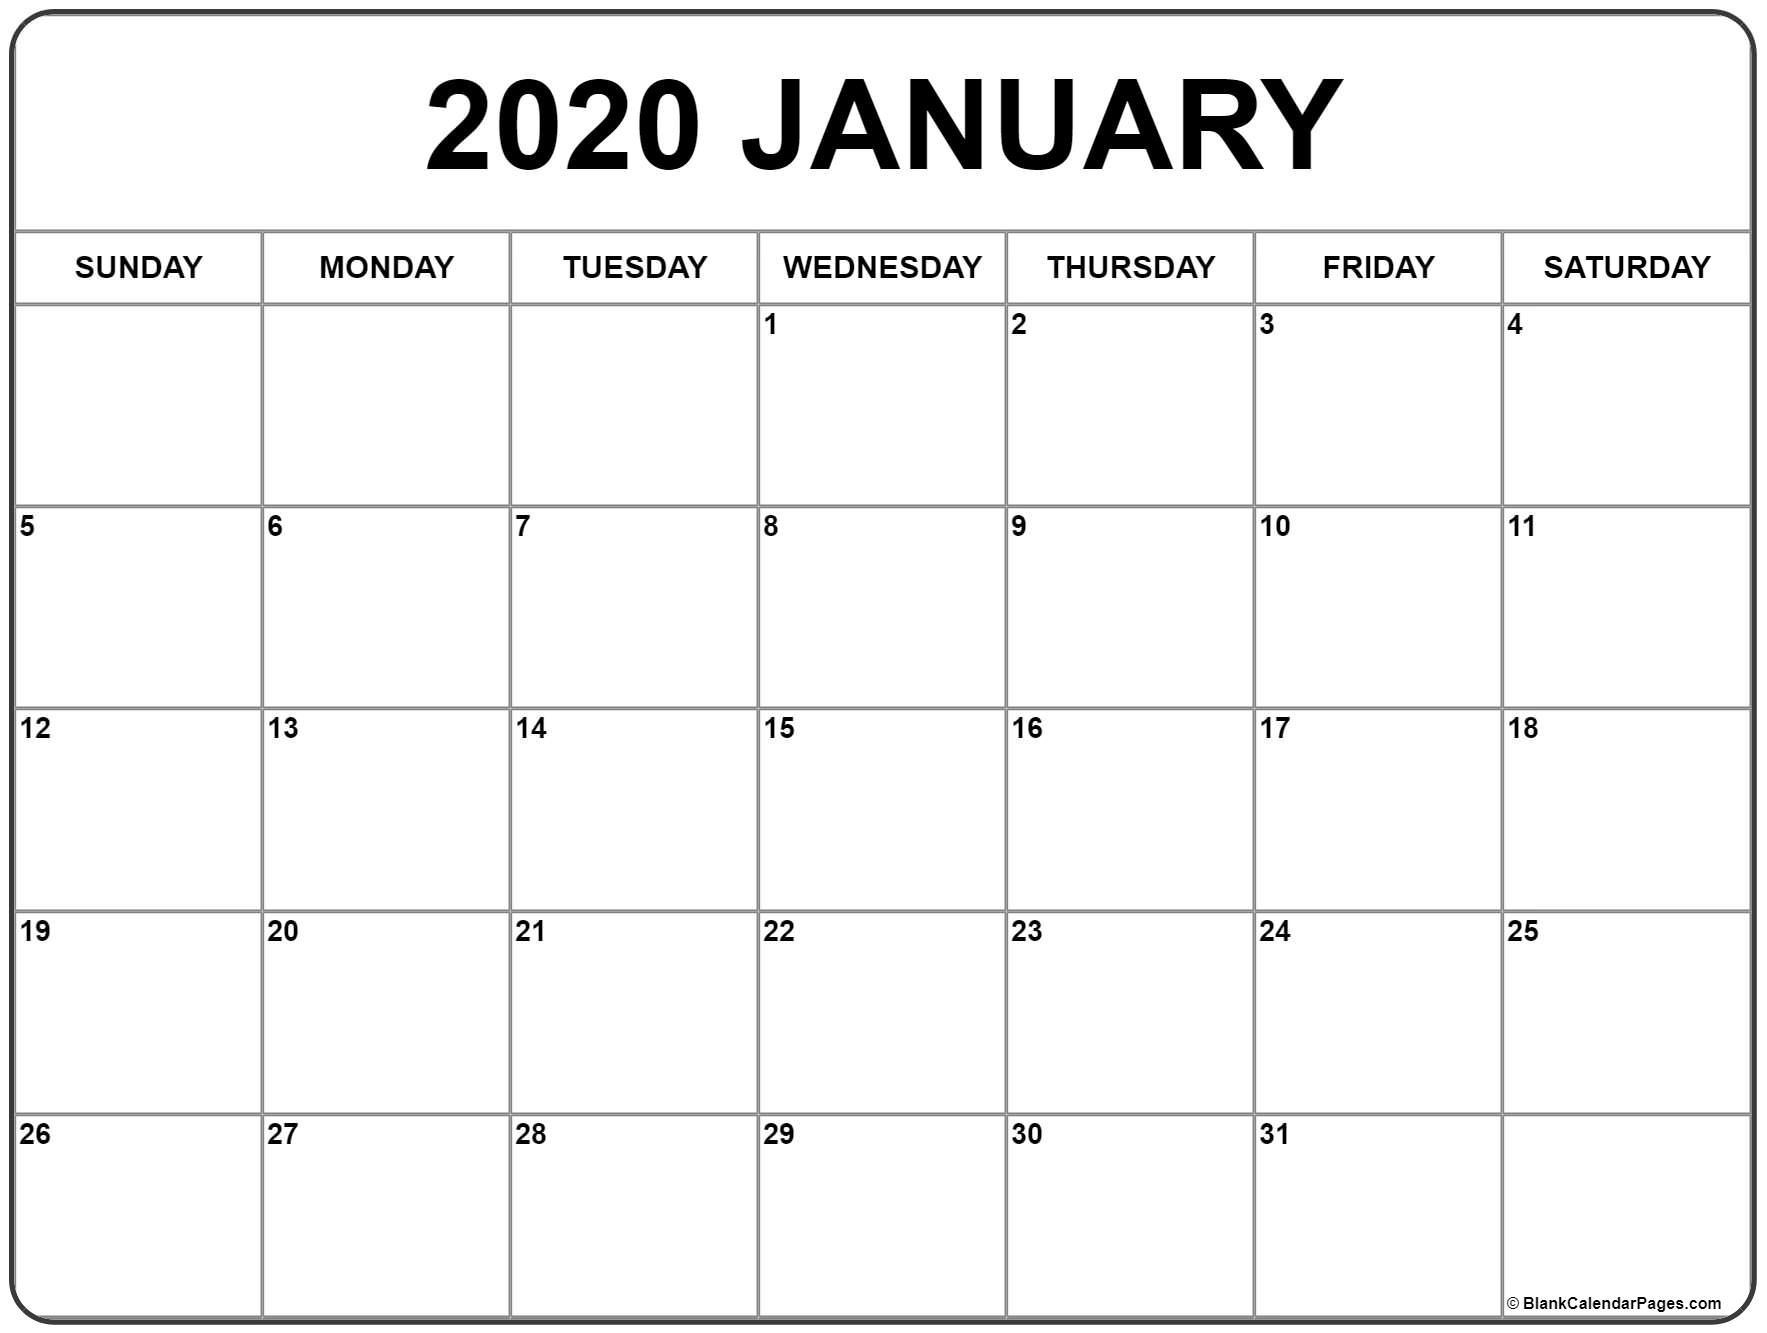 January 2020 Calendar | Free Printable Monthly Calendars  Monthly Calendar 2020